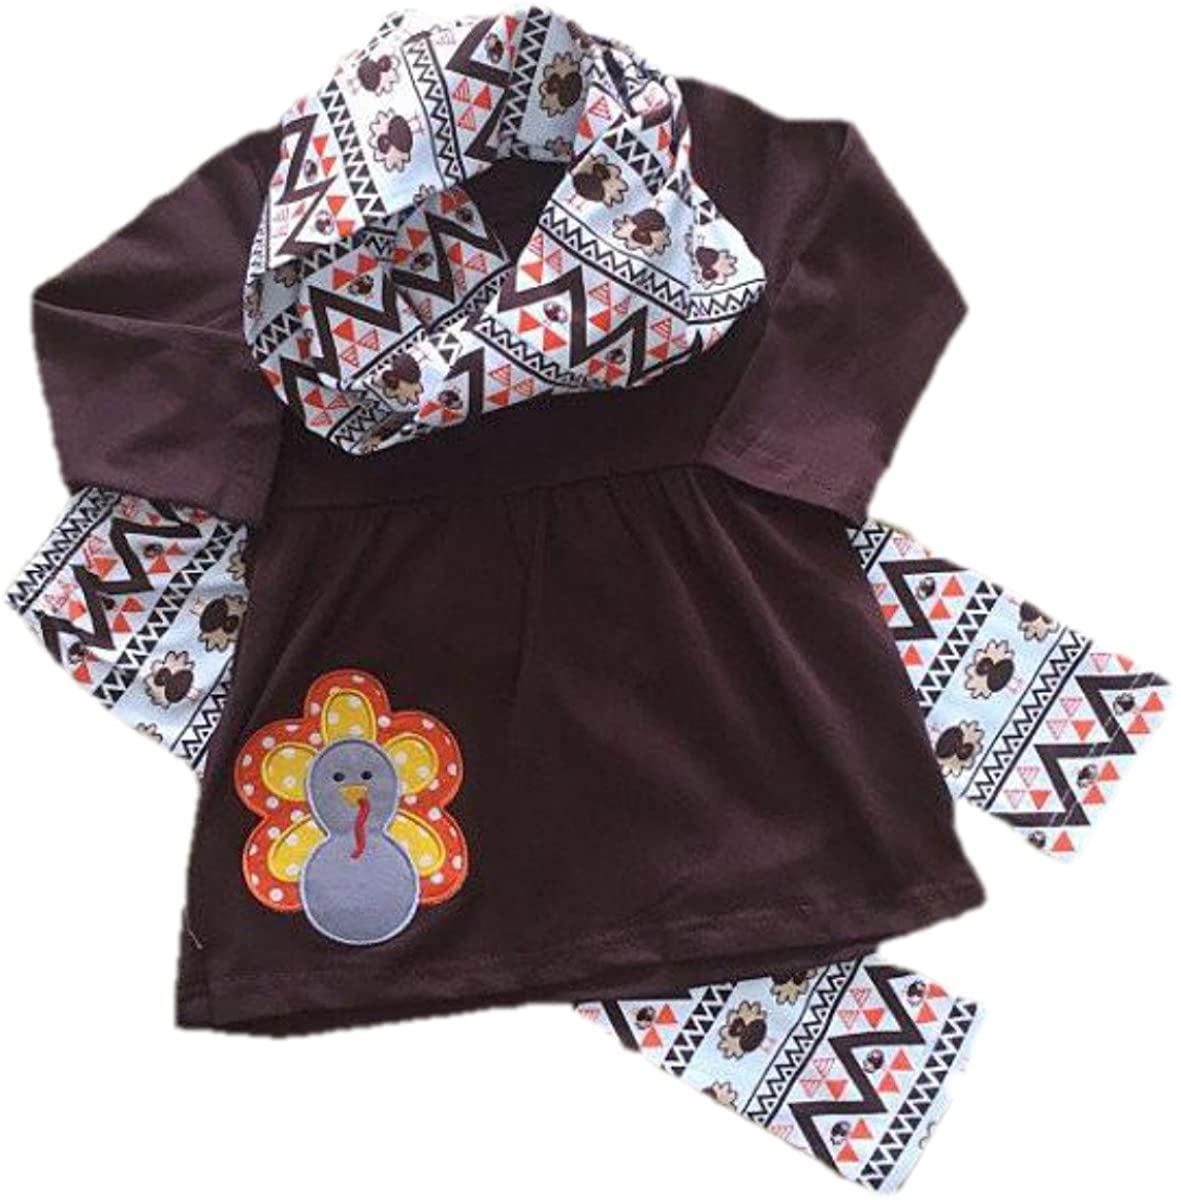 Cute Kids Clothing Toddler Girl/Girl's Thanksgiving Turkey Applique Scarf Outfit Boutique Set 6 Months to 6/7 Years